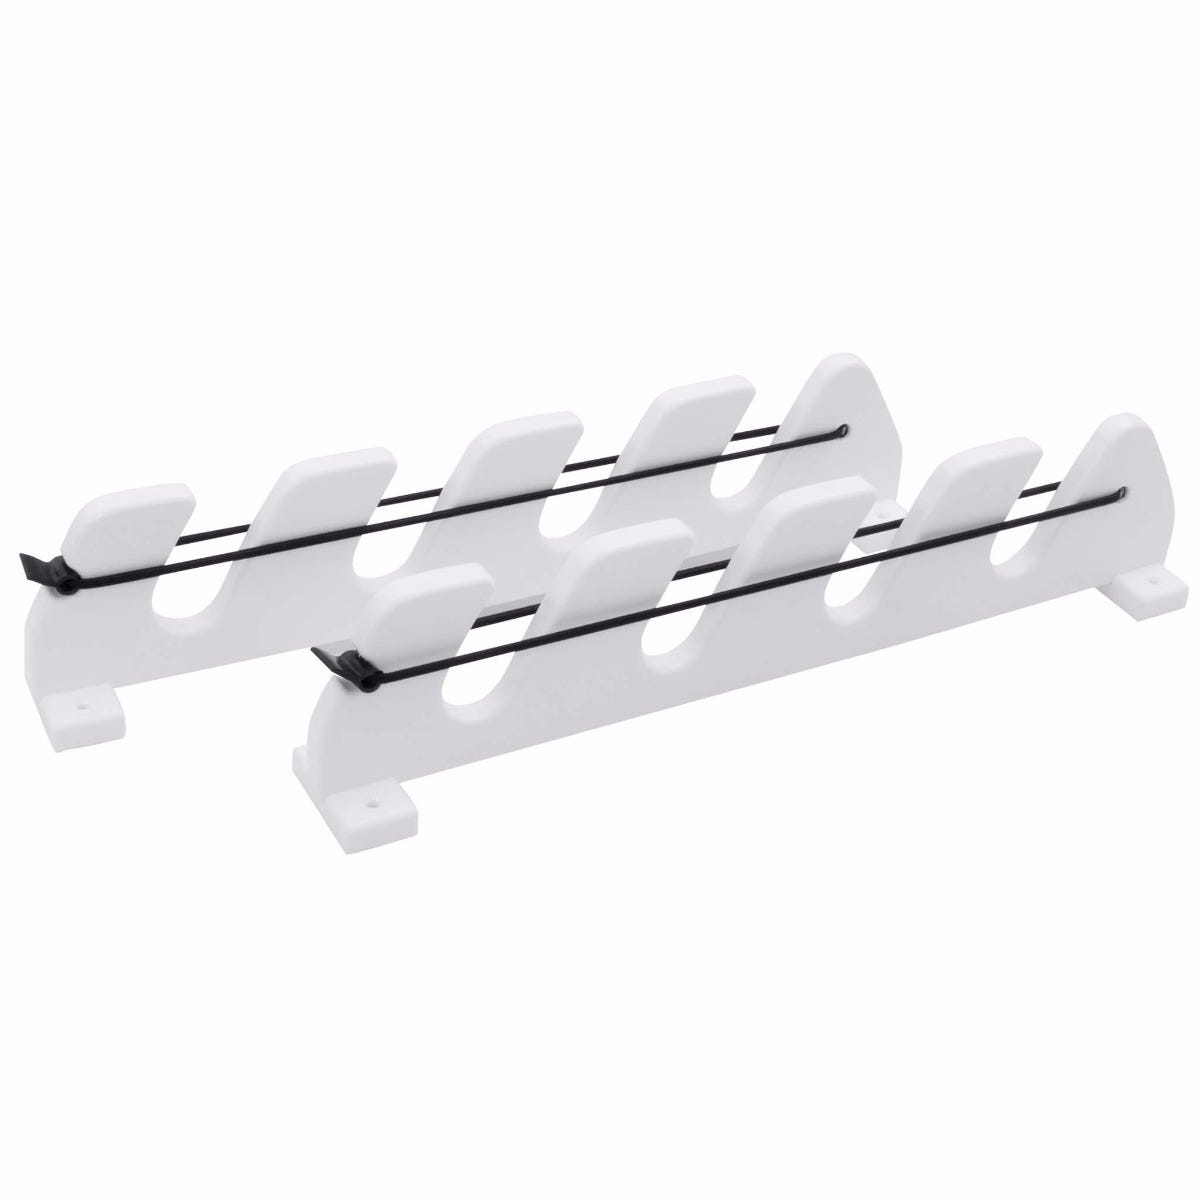 Boat rod rack system cosmecol for Fishing pole holders for boats